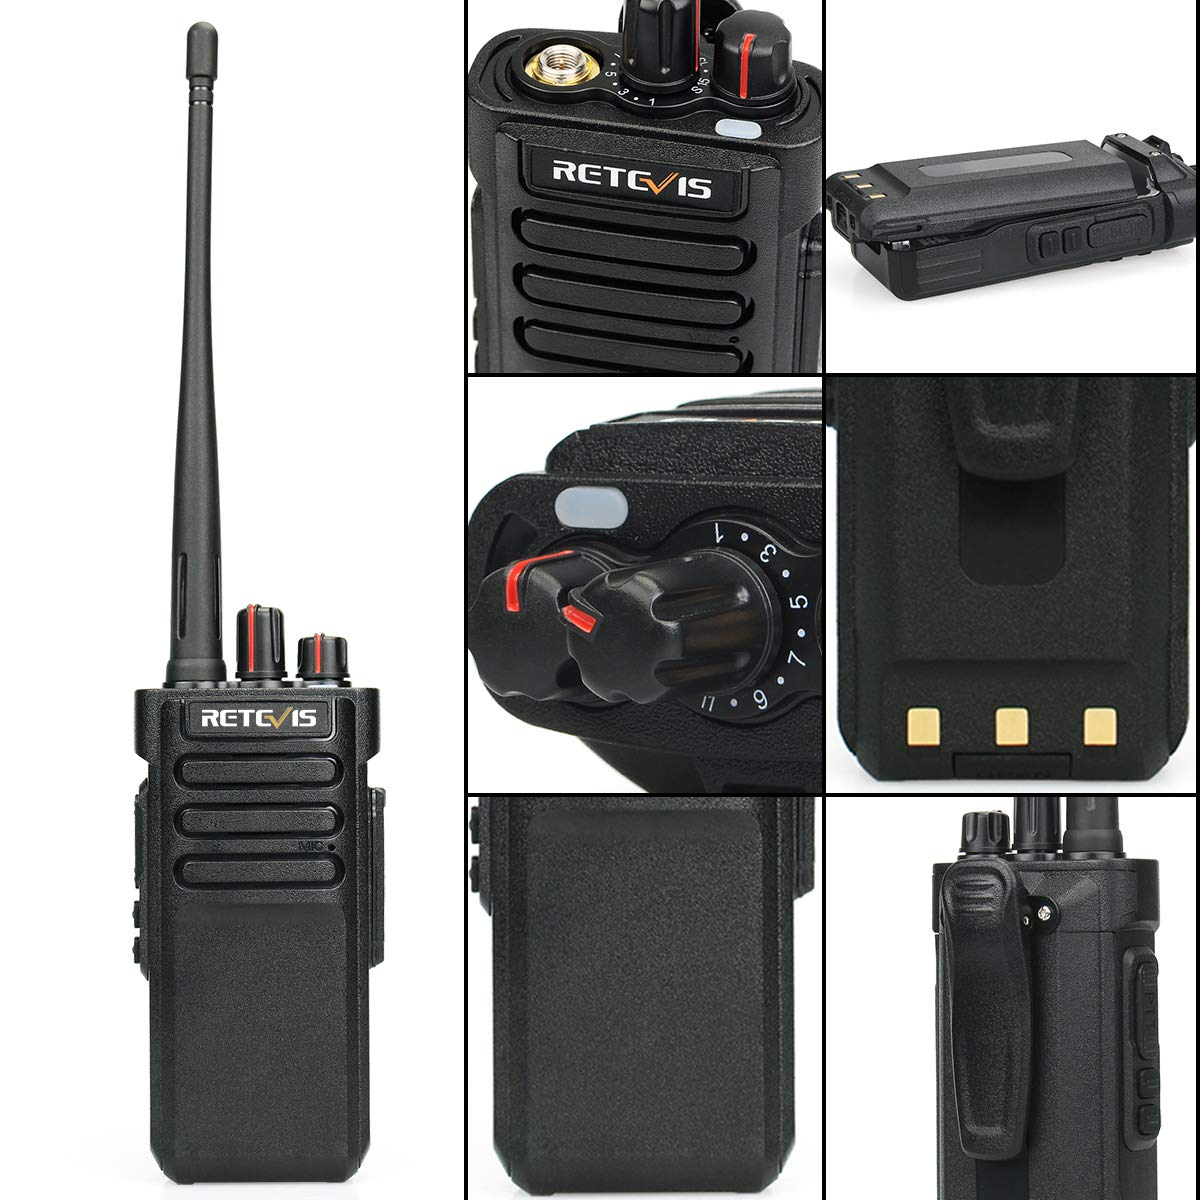 Black, 6 Pack USA7024A@5-C9003A@5 Retevis RT29 2 Way Radios Long Range 3200mAh UHF Encryption Hands Free Scrambler Alarm Walkie Talkies Rechargeable with Super Clear Audio